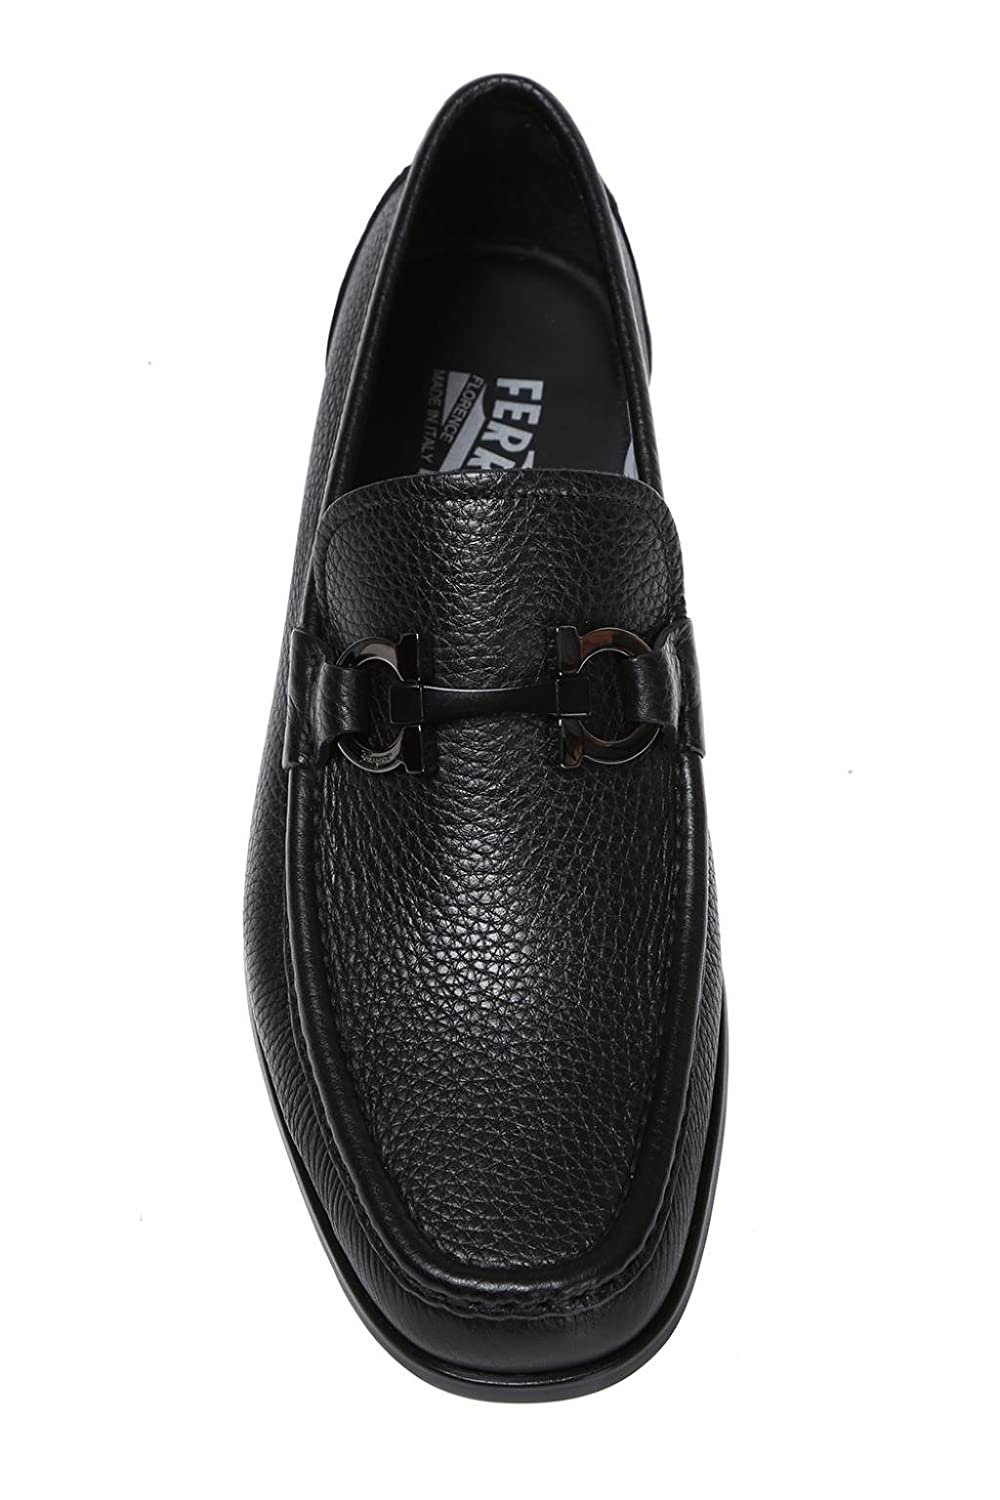 Salvatore Ferragamo - Mocasines para hombre negro negro IT - Marke Größe, color negro, talla 39 IT - Marke Größe 6: Amazon.es: Zapatos y complementos